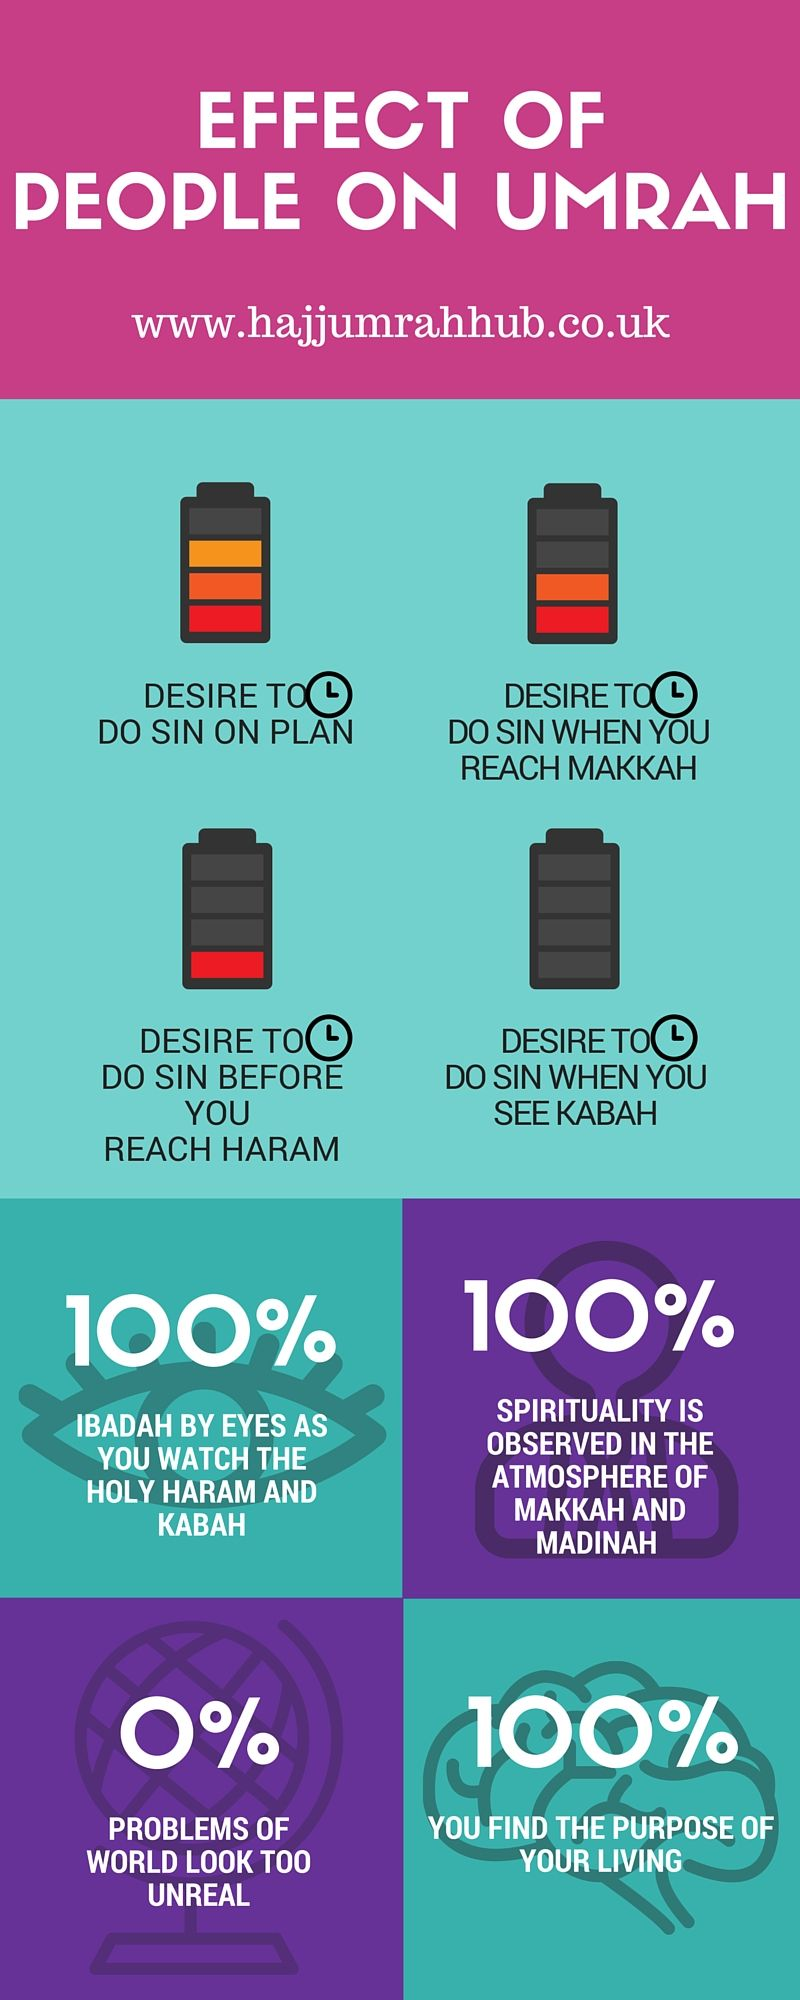 Umrah and its effects myheart pinterest islam islamic umrah and its effects solutioingenieria Gallery